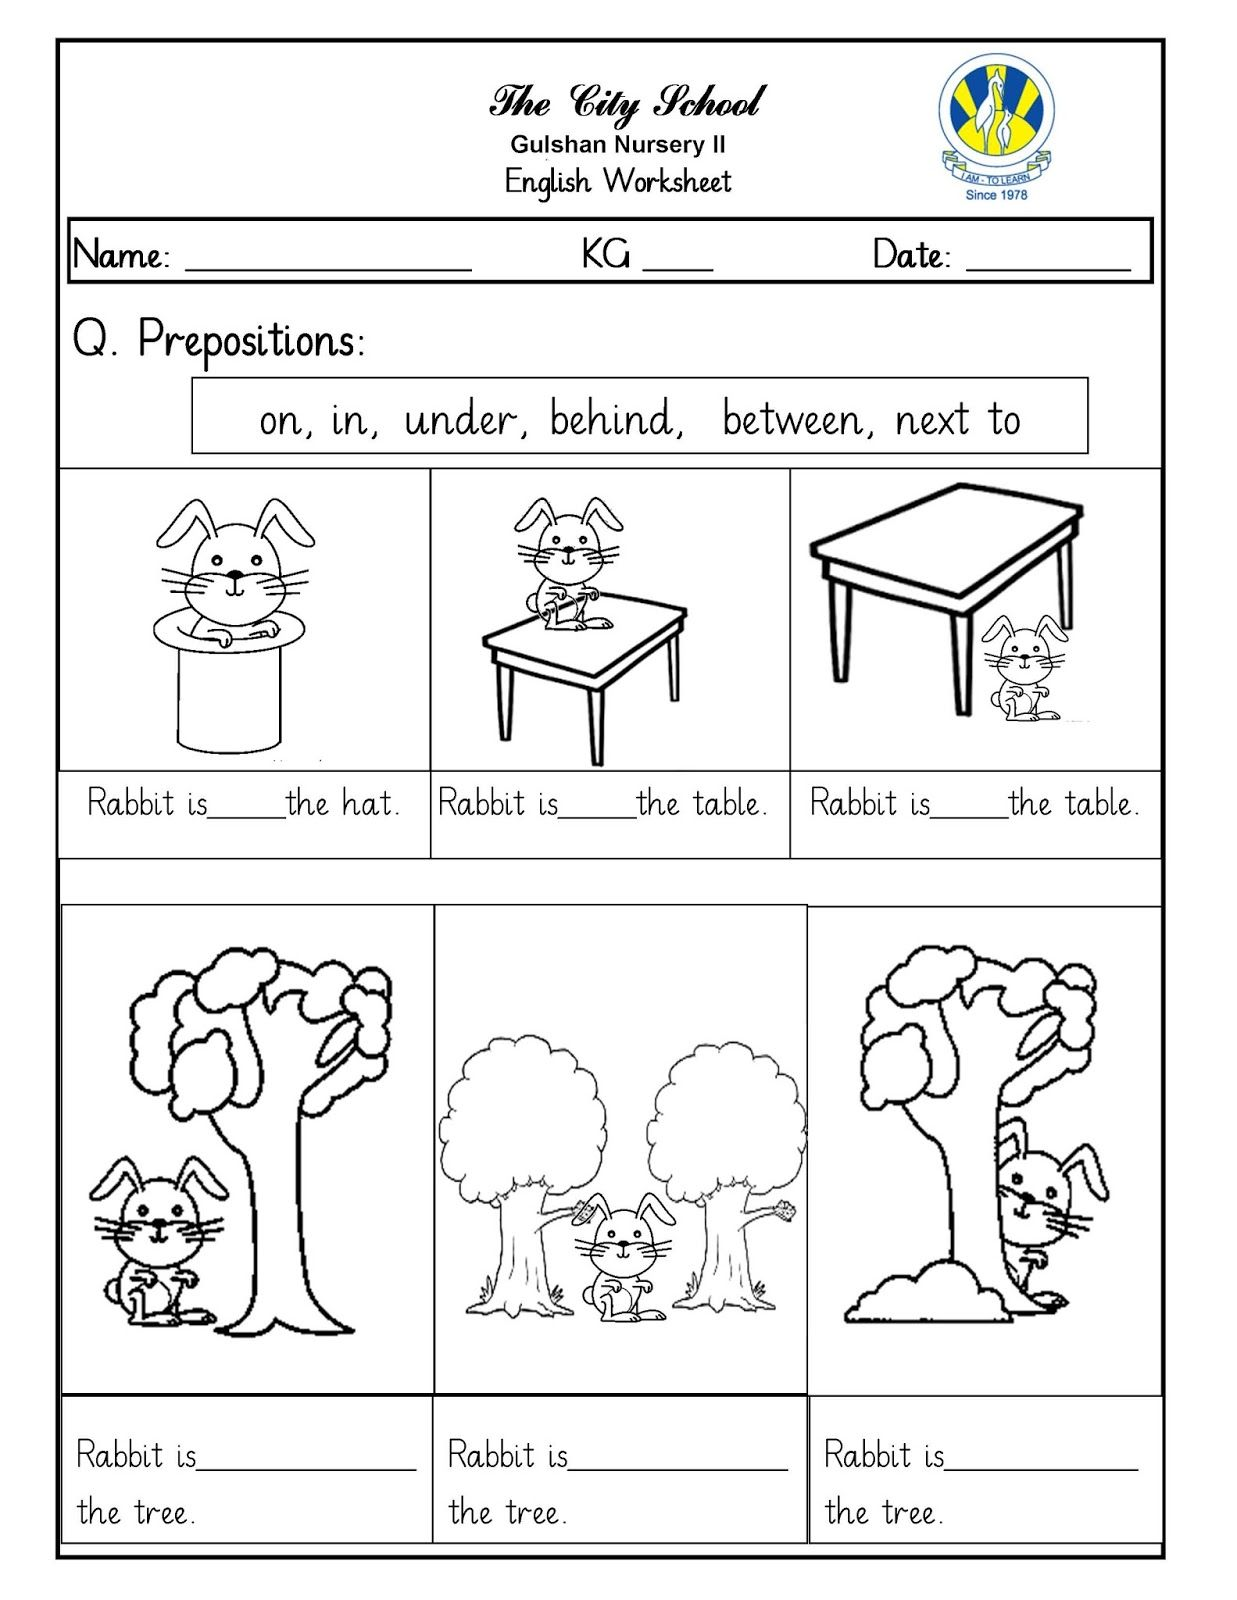 Imagen relacionada Prepositions, Preposition worksheets